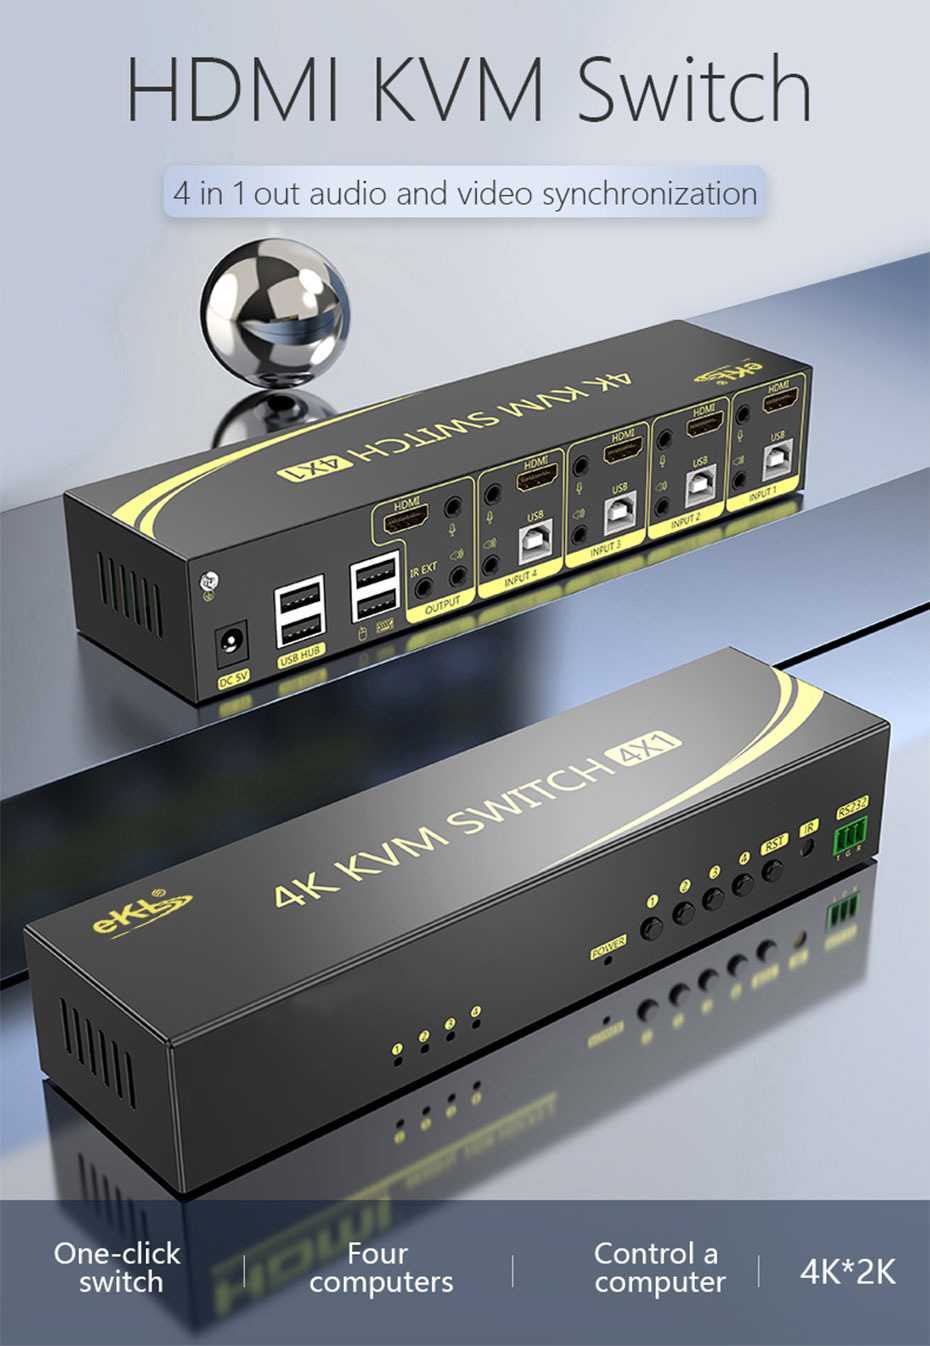 4 in 1 out HDMI2.0 KVM switch 41HK2.0